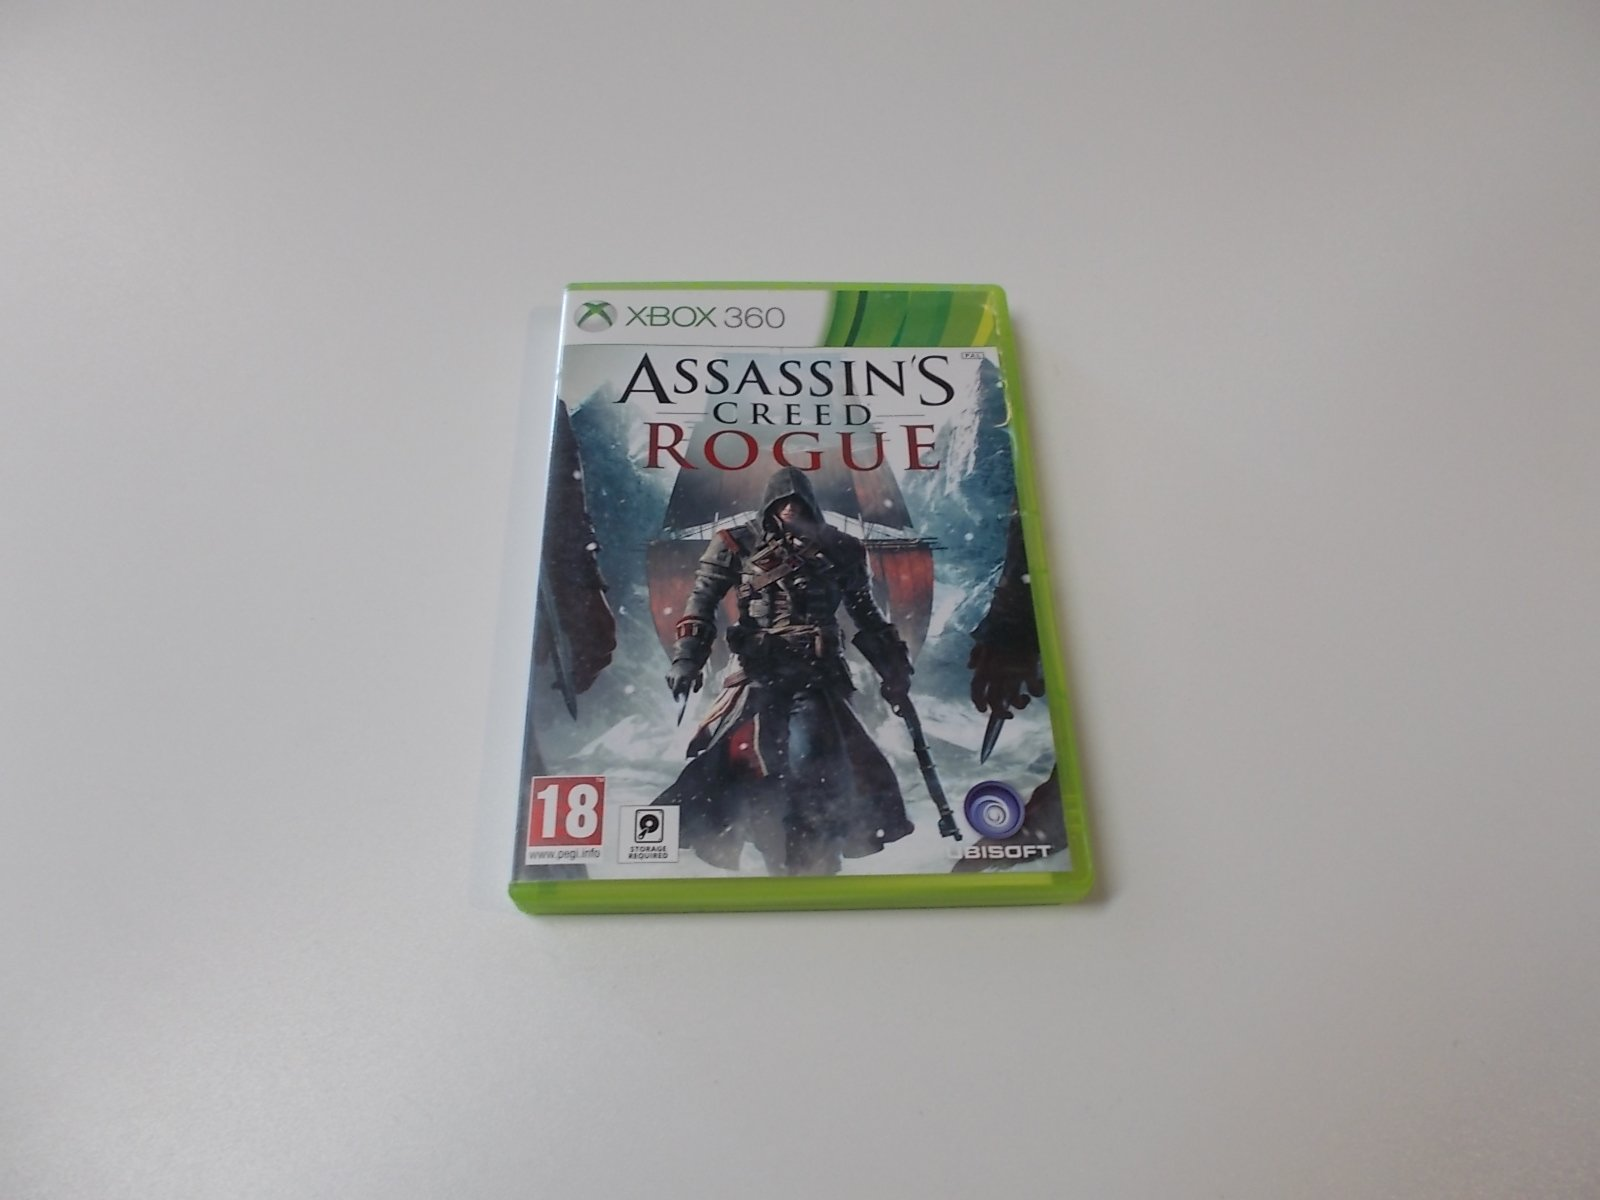 Assassin's Creed Rogue - GRA Xbox 360 - Opole 0435